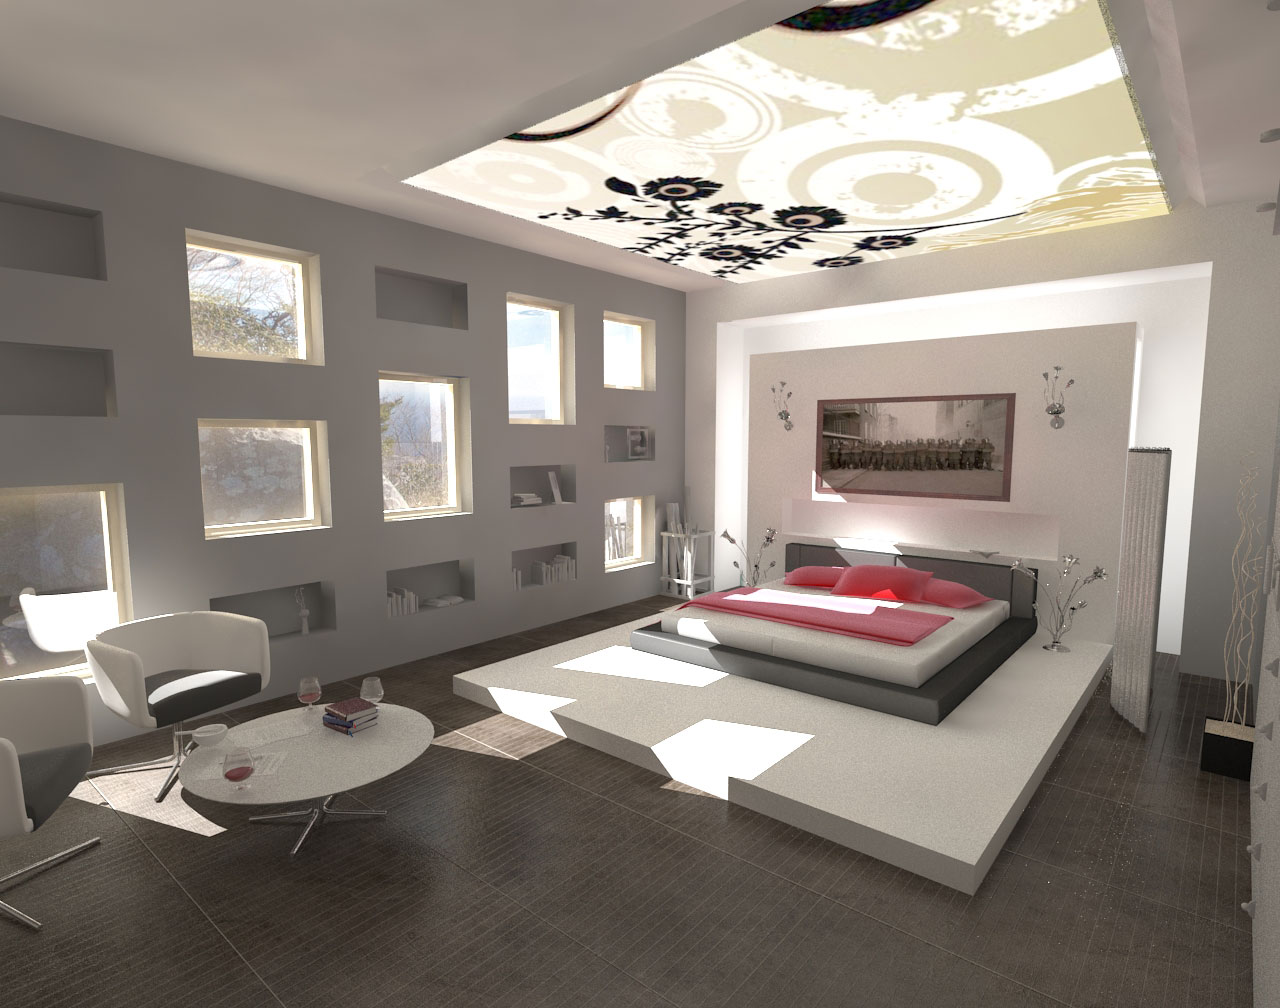 Decorations minimalist design modern bedroom interior for Bedroom interior images